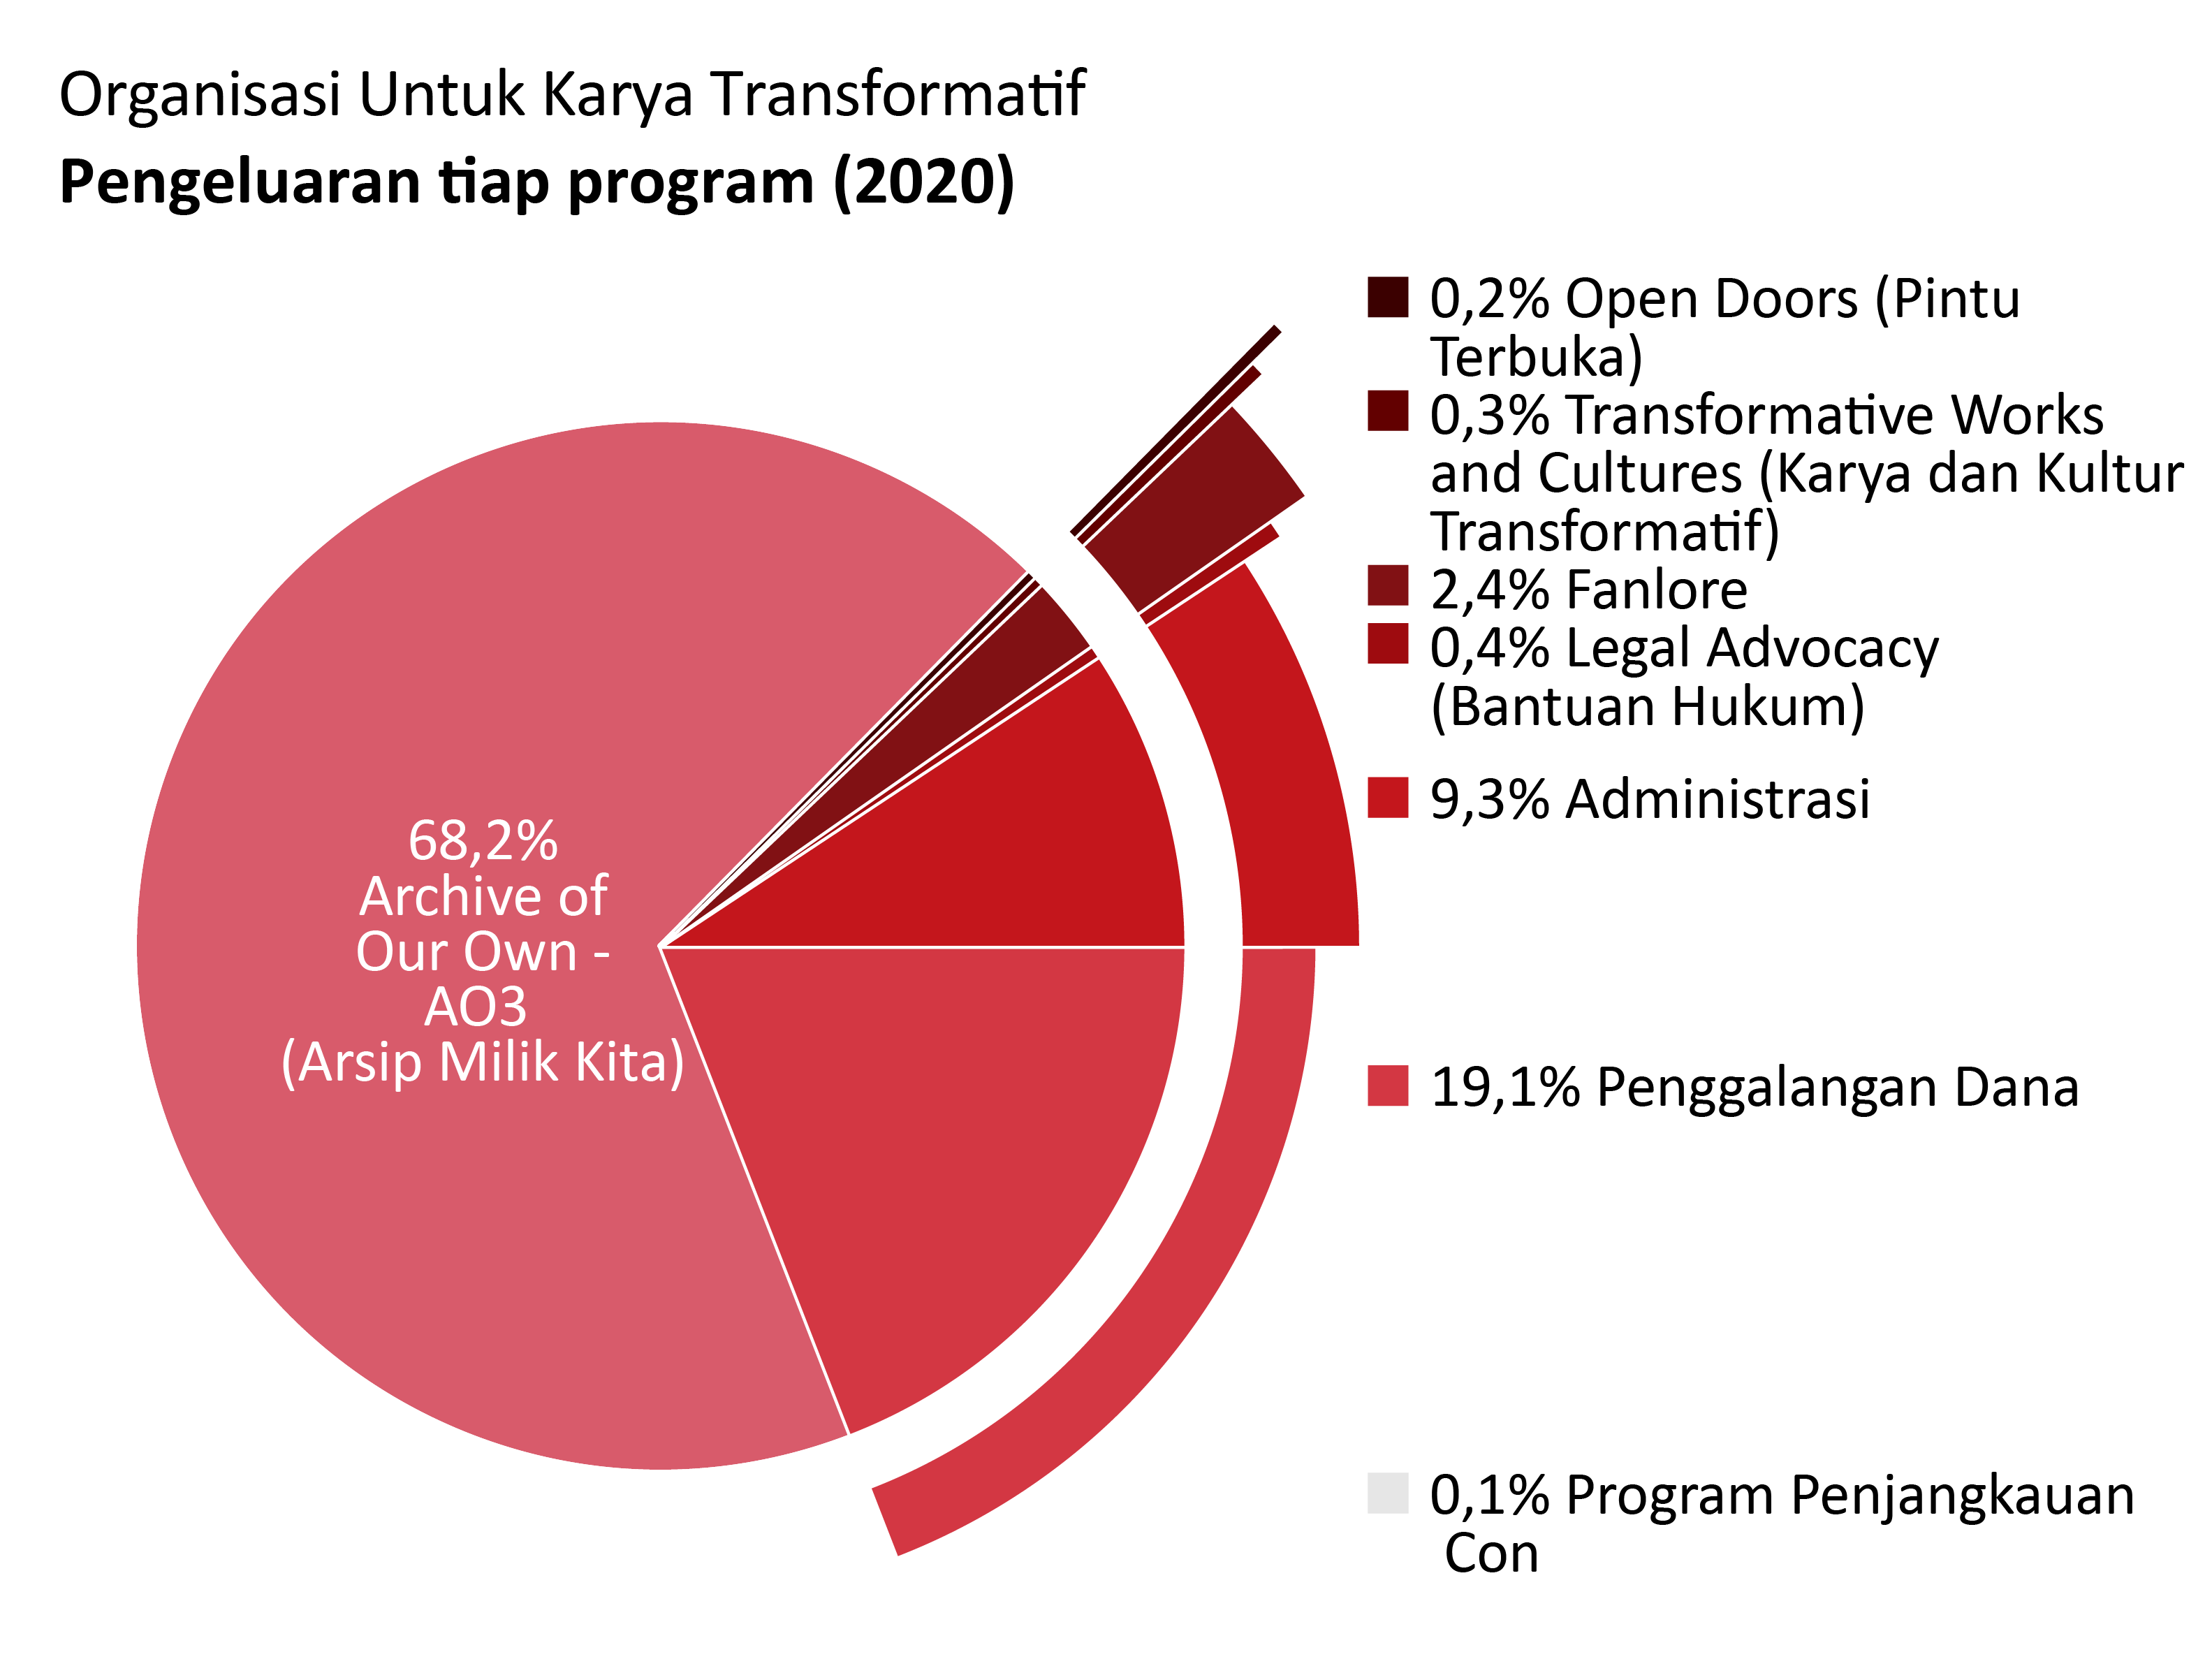 Pengeluaran per program: Archive of Our Own – AO3 (Arsip Milik Kita): 68,2%, Open Doors (Pintu Terbuka): 0,2%, Transformative Works and Cultures (Karya dan Kultur Transformatif): 0,3%, Fanlore: 2,4%, Legal Advocacy (Bantuan Hukum): 0,4%, Con Outreach (Program Penjangkauan Con): 0,1%, Administrasi: 9,3%, Penggalangan dana: 19,1%